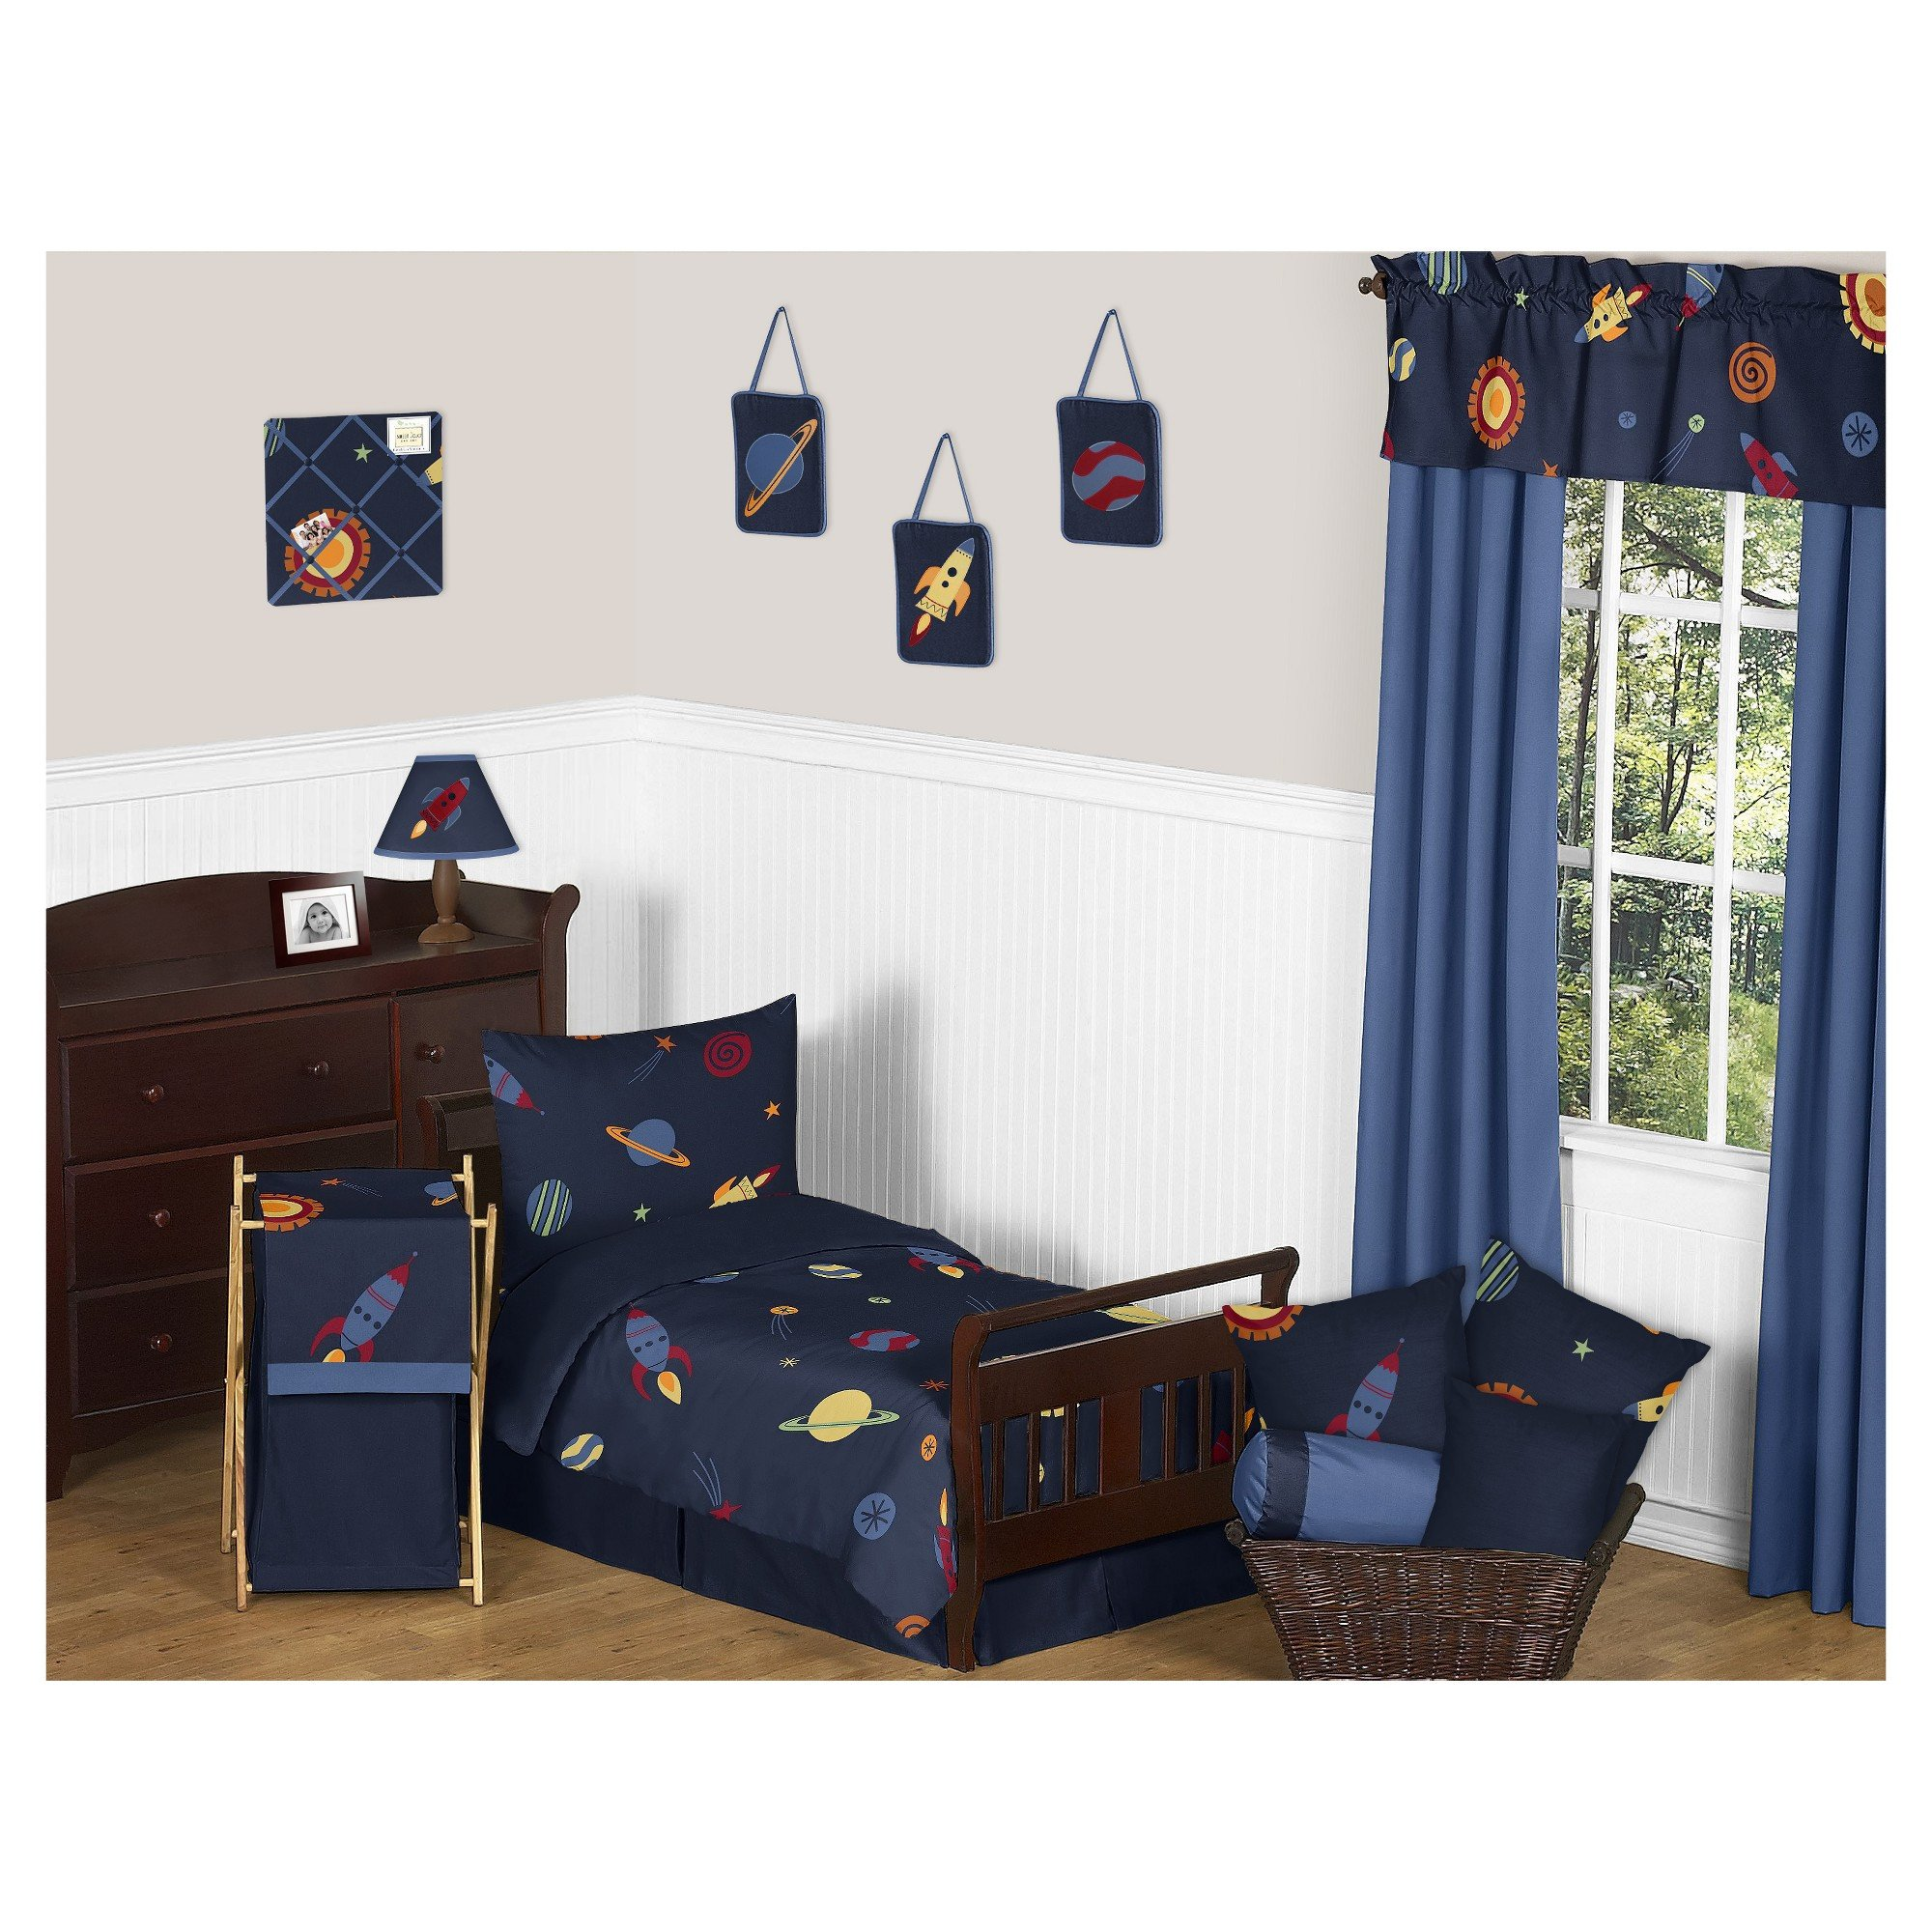 Paw Patrol Bedroom Furniture Luxury Jojo Designs Sweet Navy Space Galaxy Bedding Set toddler